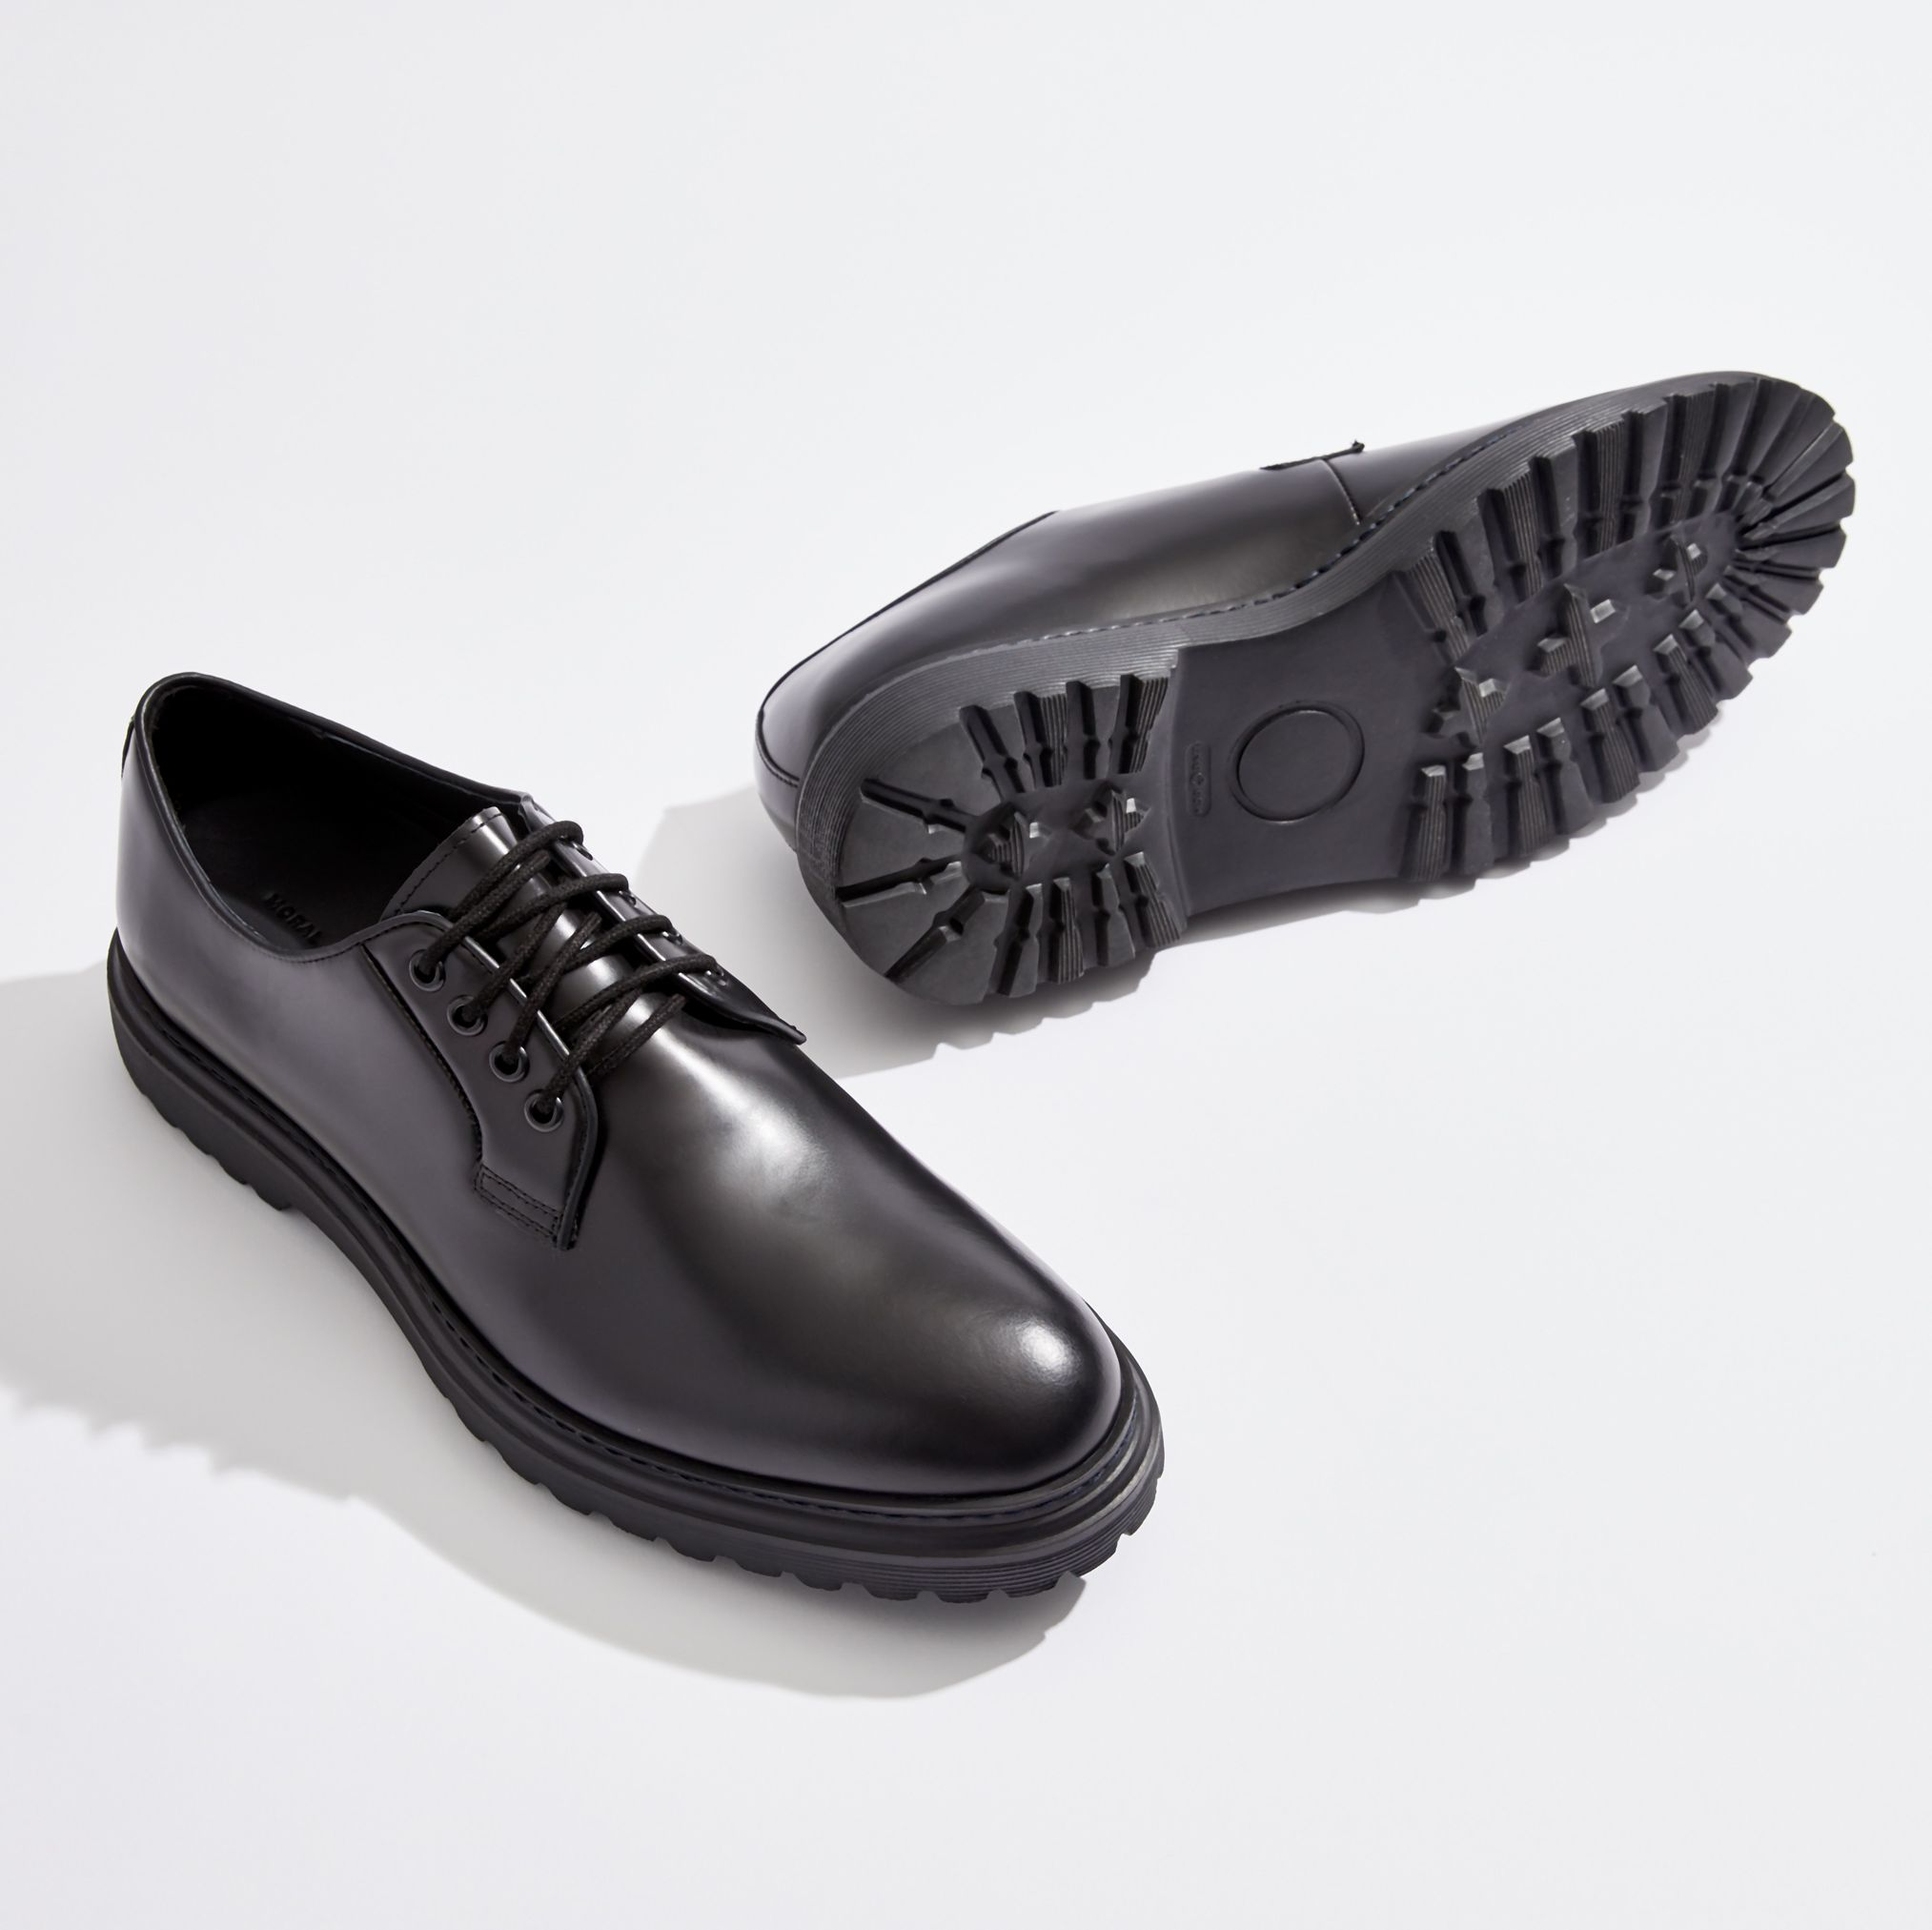 The Proper, Pulled-Together Shoes That Are Just as Comfortable as Sneakers